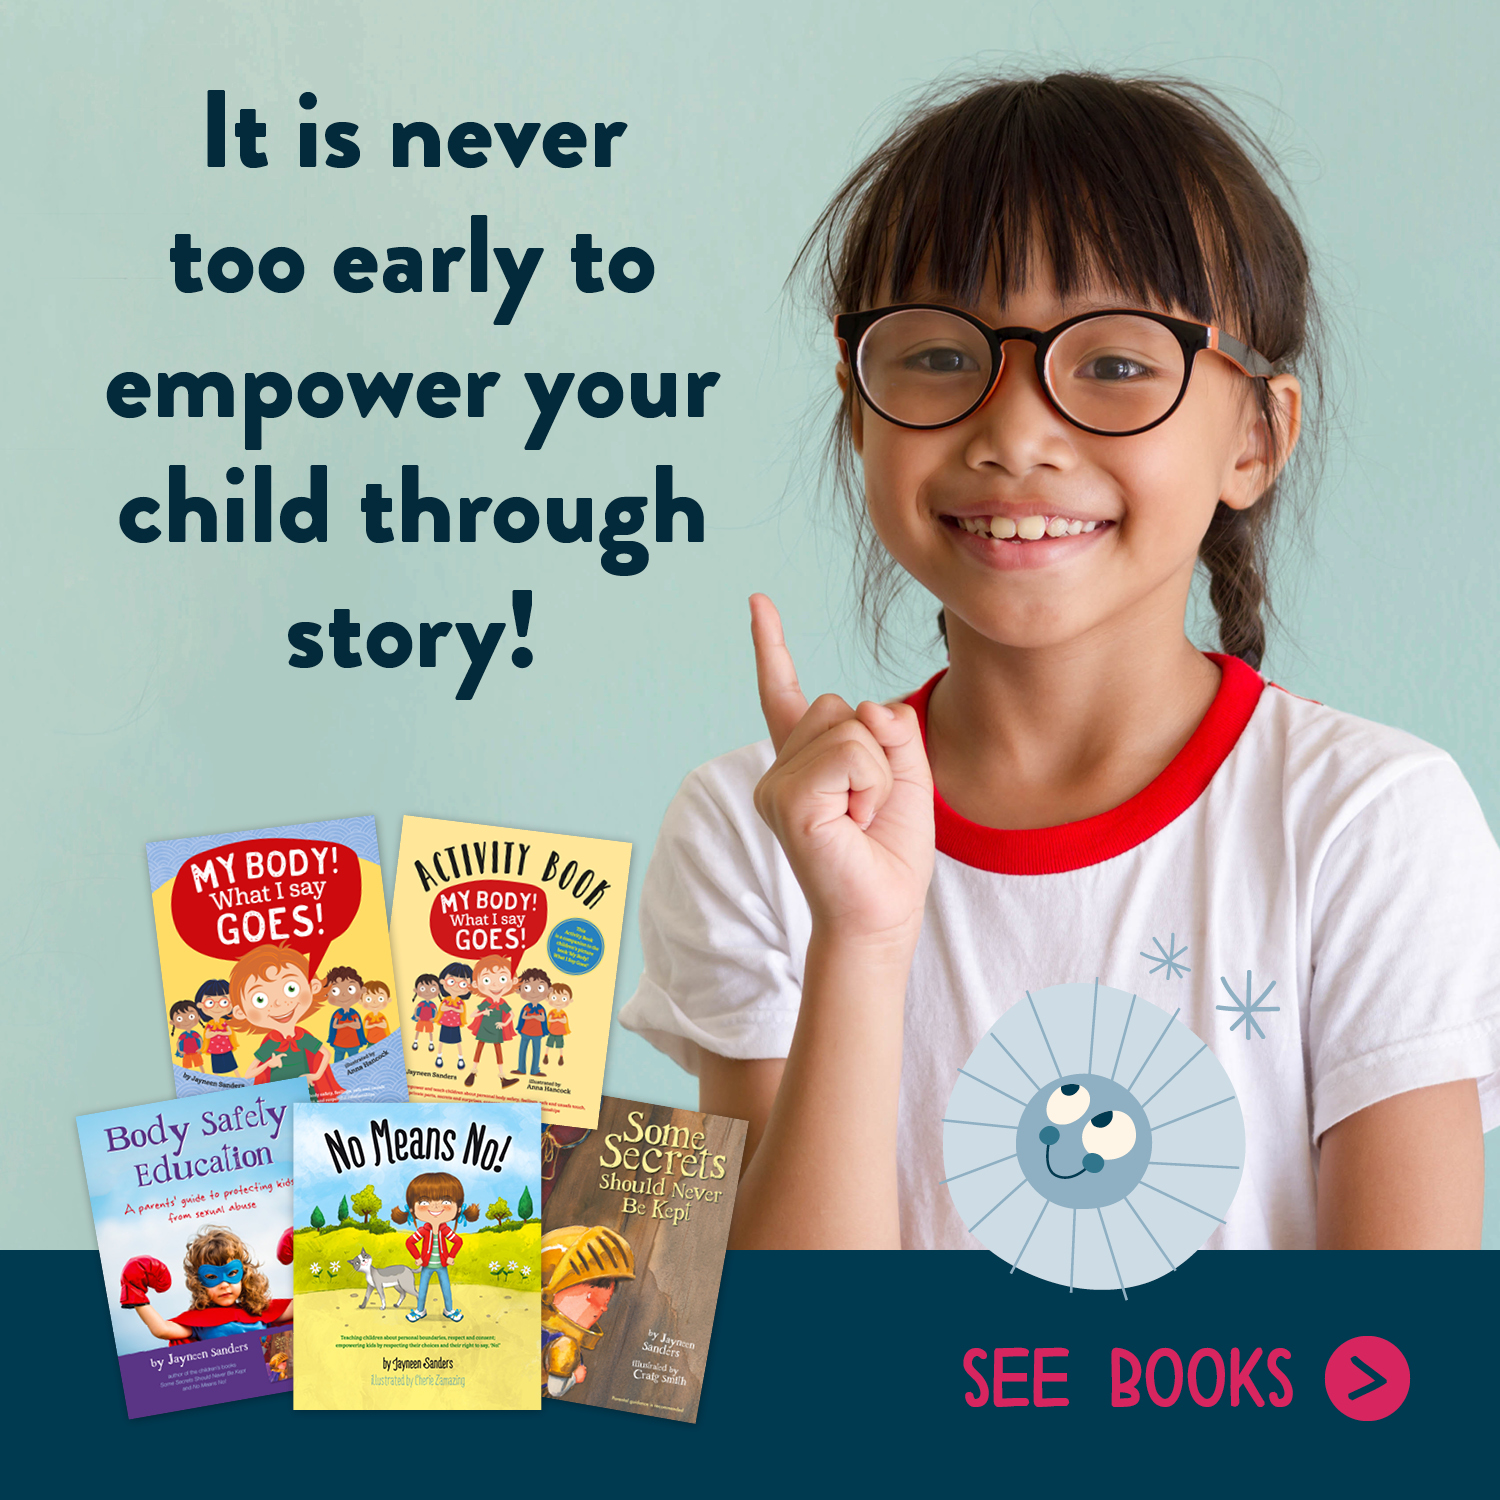 It is never too early to empower your child through story!